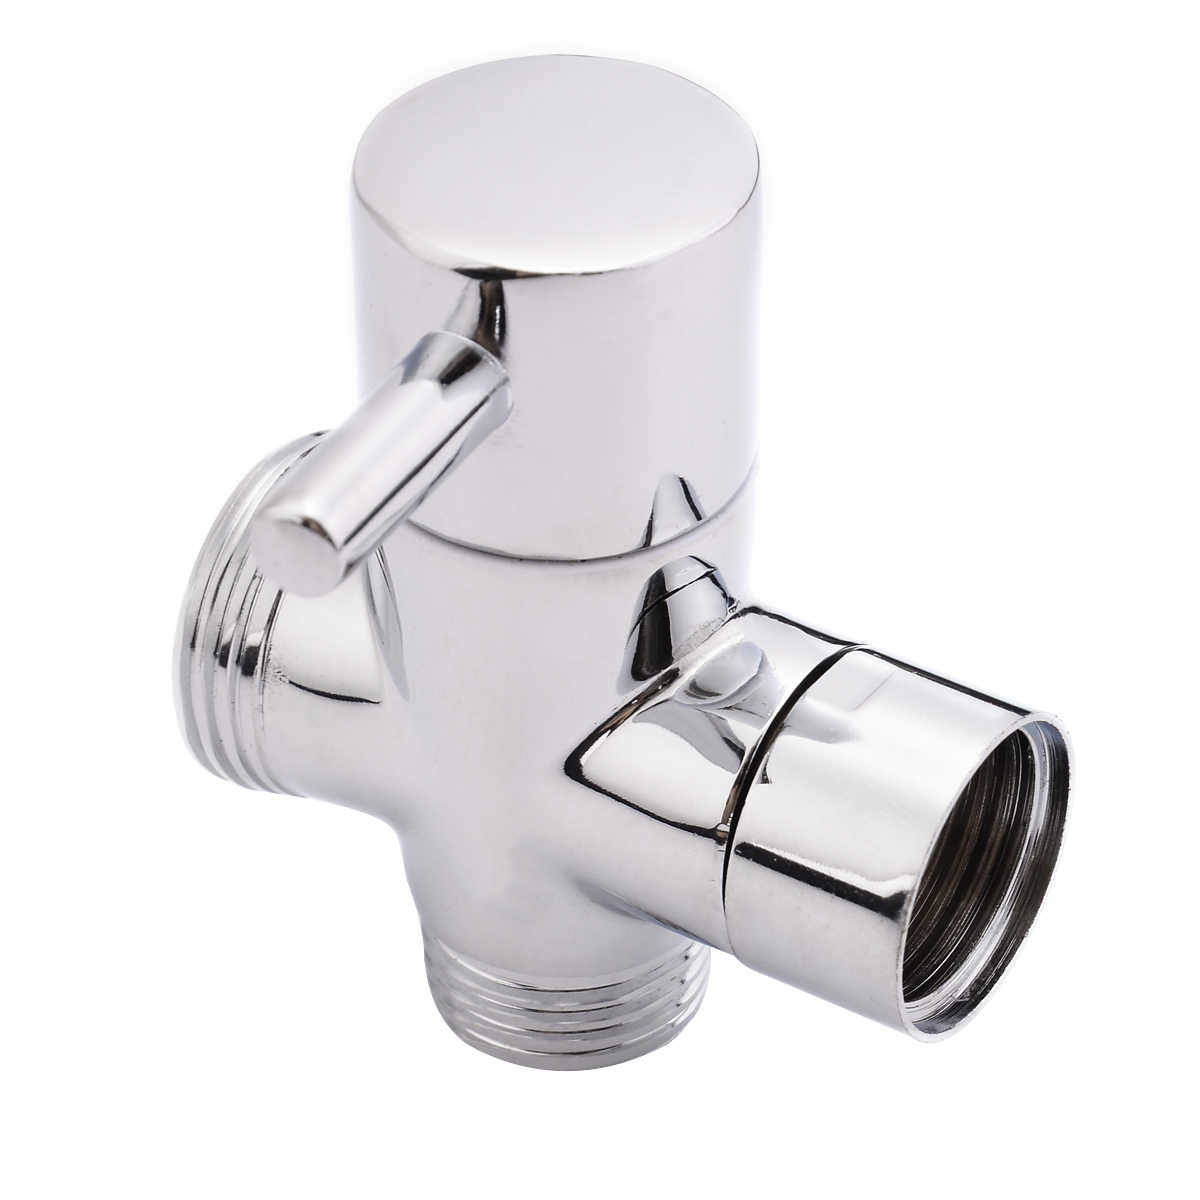 Shower Head Diverter Valve.Brass 3 Ways Shower Head Diverter Valve For Bathroom Toilet Sprayer Faucet T Adapter